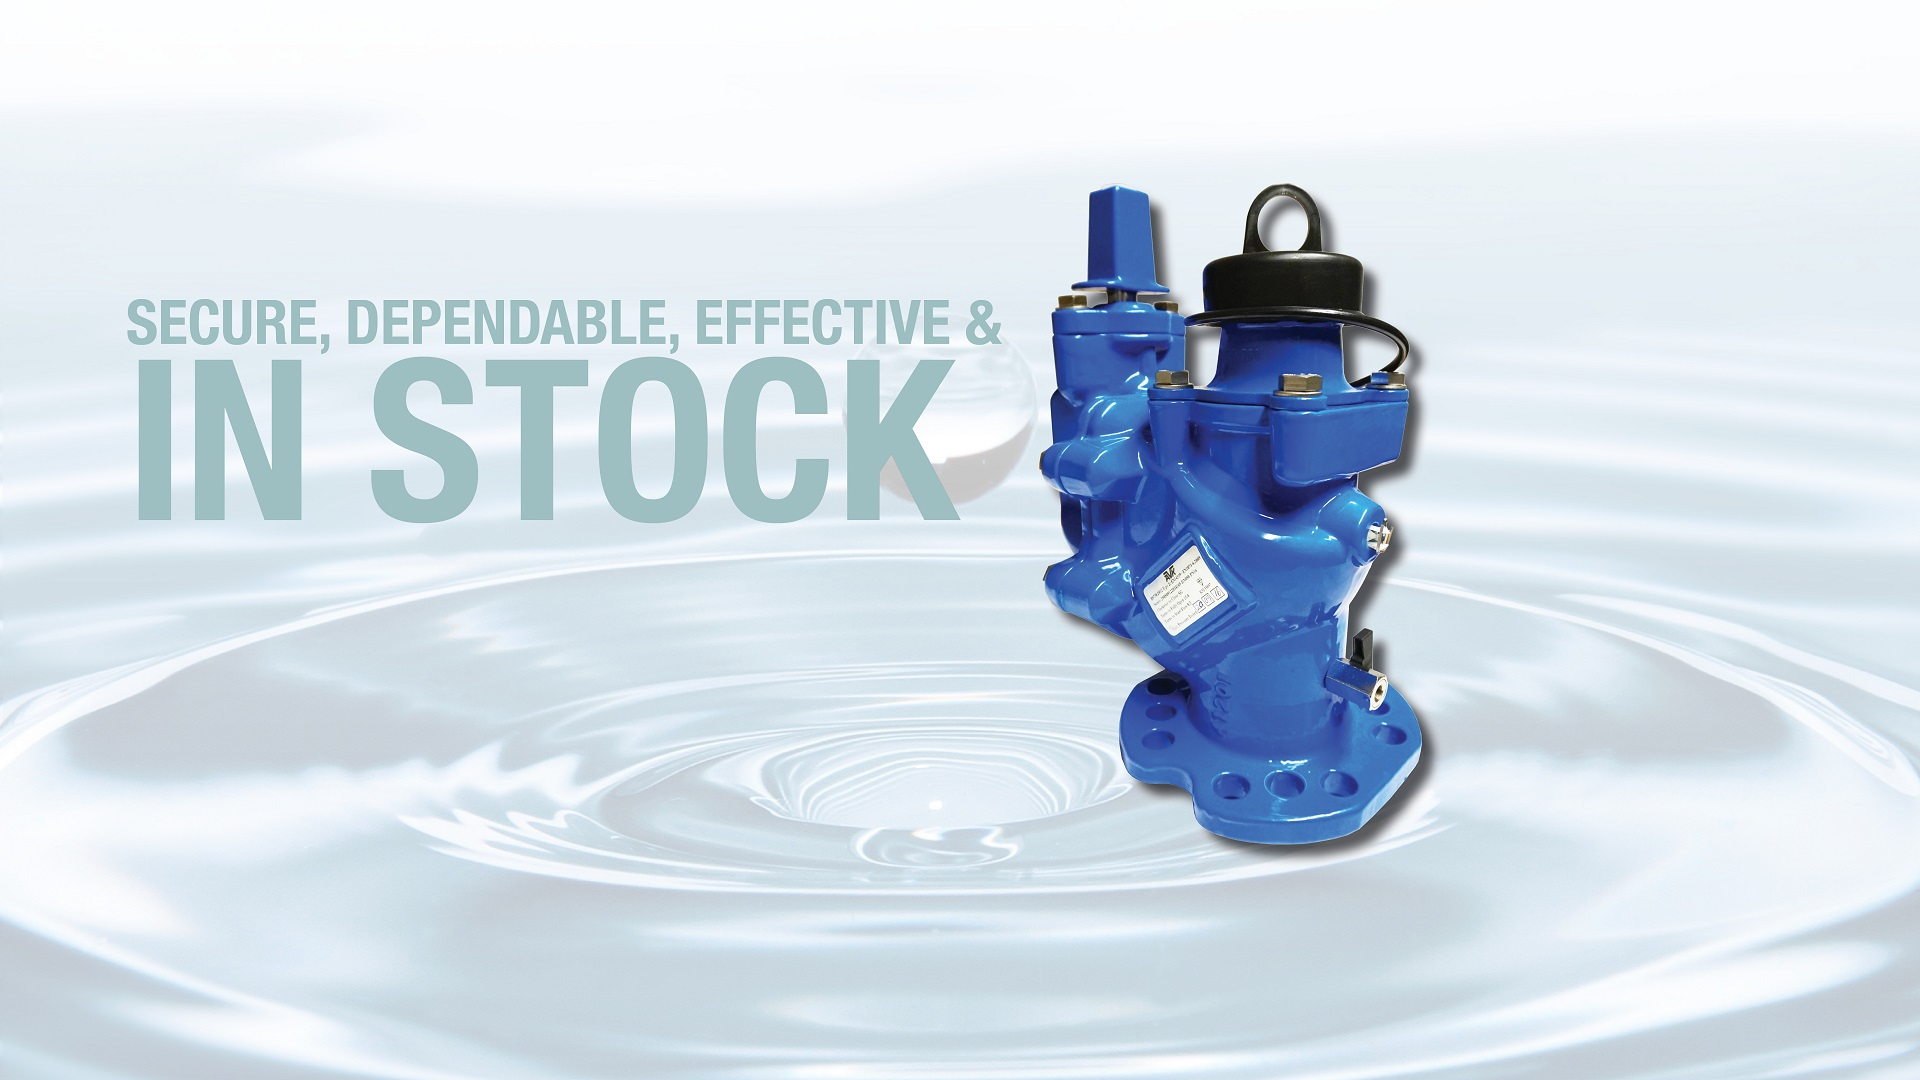 AVK Series 29/91 Hydrant in stock